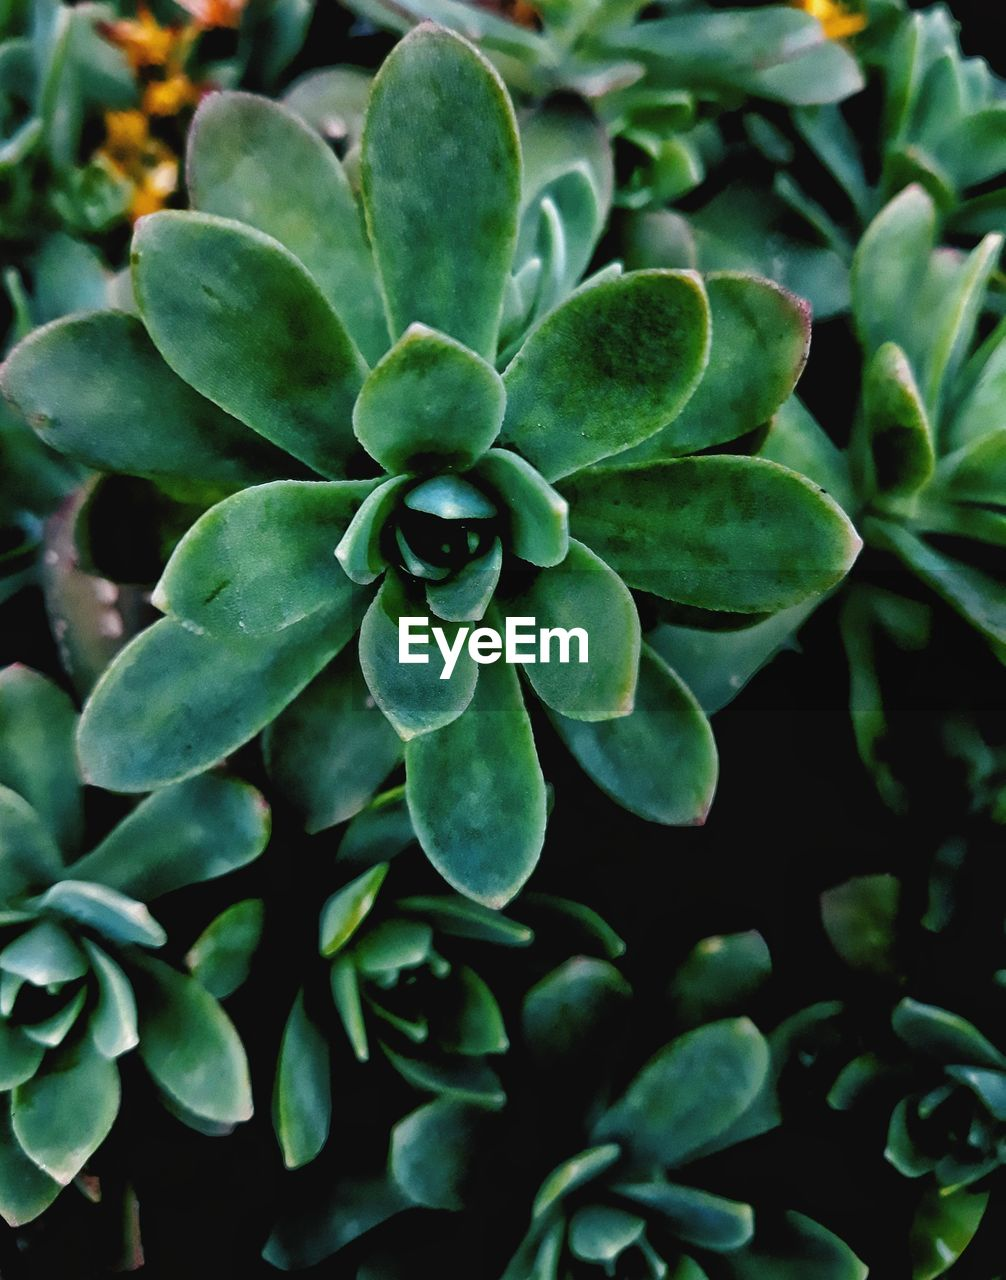 growth, plant, plant part, leaf, close-up, green color, beauty in nature, nature, no people, day, freshness, focus on foreground, outdoors, high angle view, tranquility, succulent plant, selective focus, fragility, vulnerability, directly above